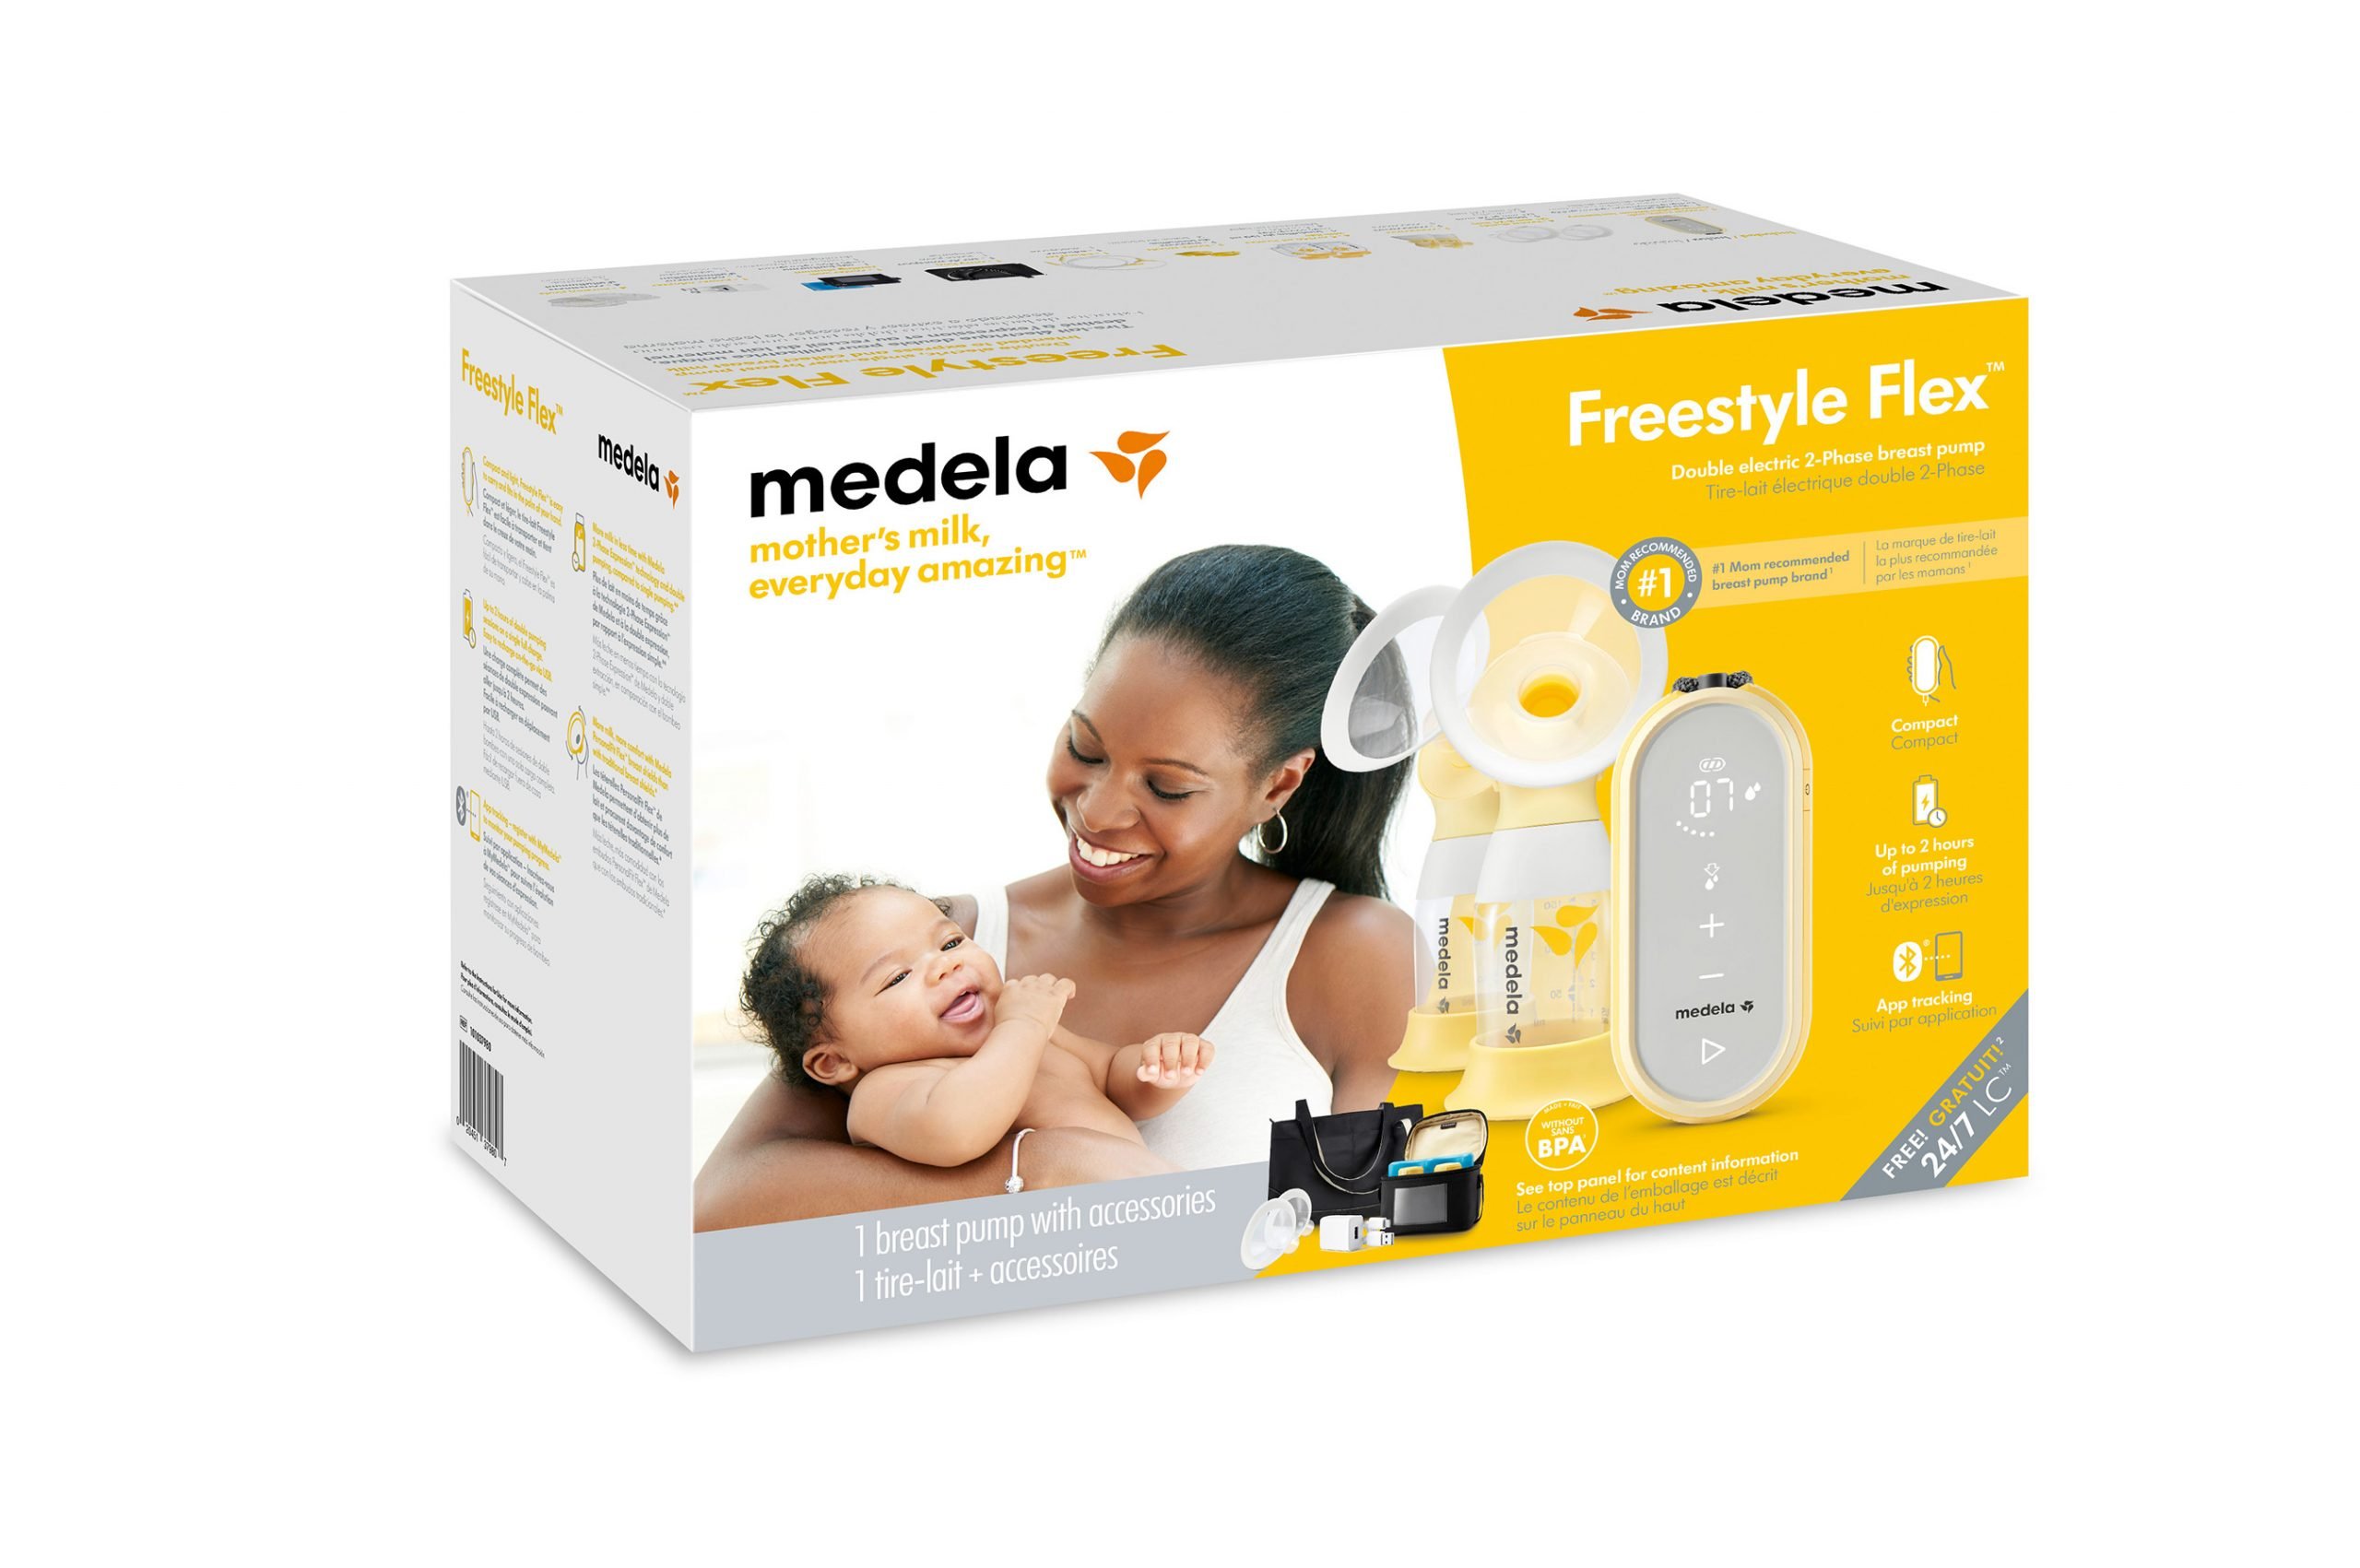 Medela Freestyle Flex Double Electric Breast Pump Pumps For Mom